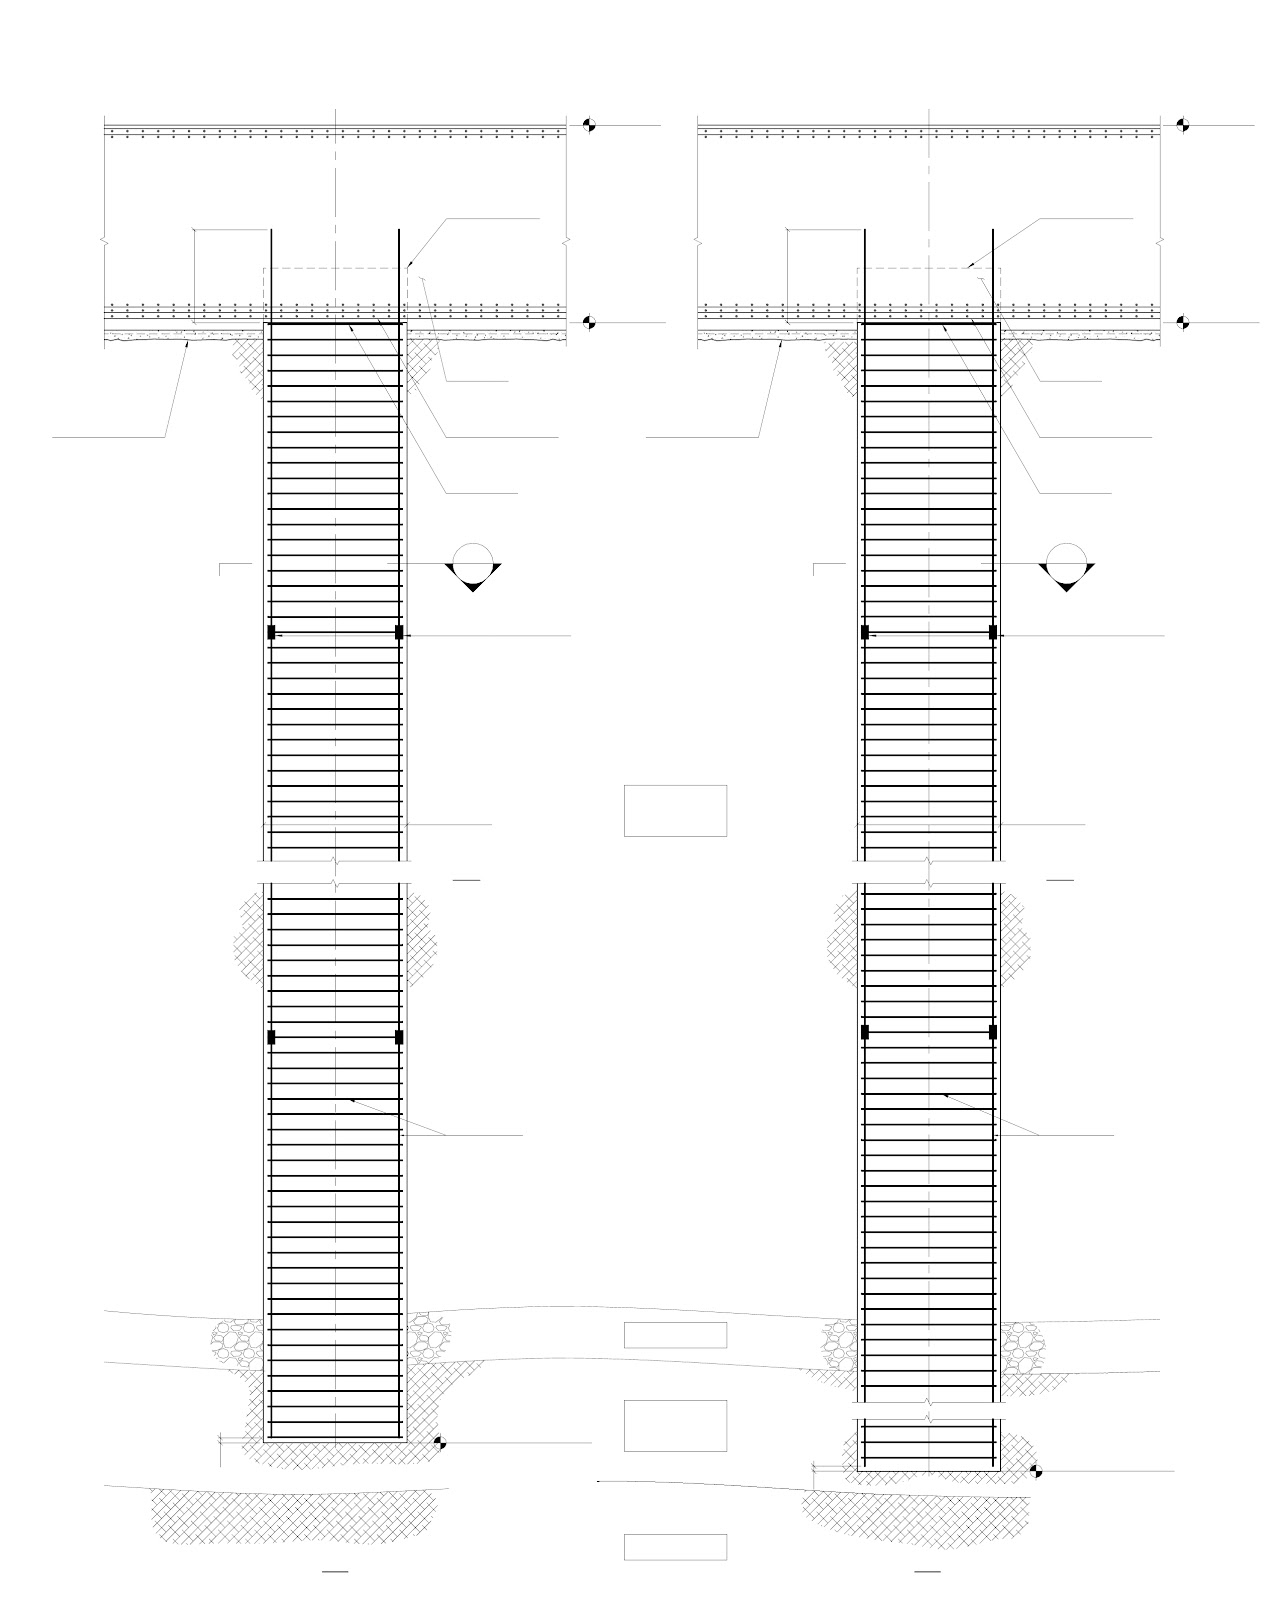 World of architecture kingdom tower plans test pile blueprints blueprint detail of two testing piles of kingdom tower worlds tallest building under construction in malvernweather Gallery